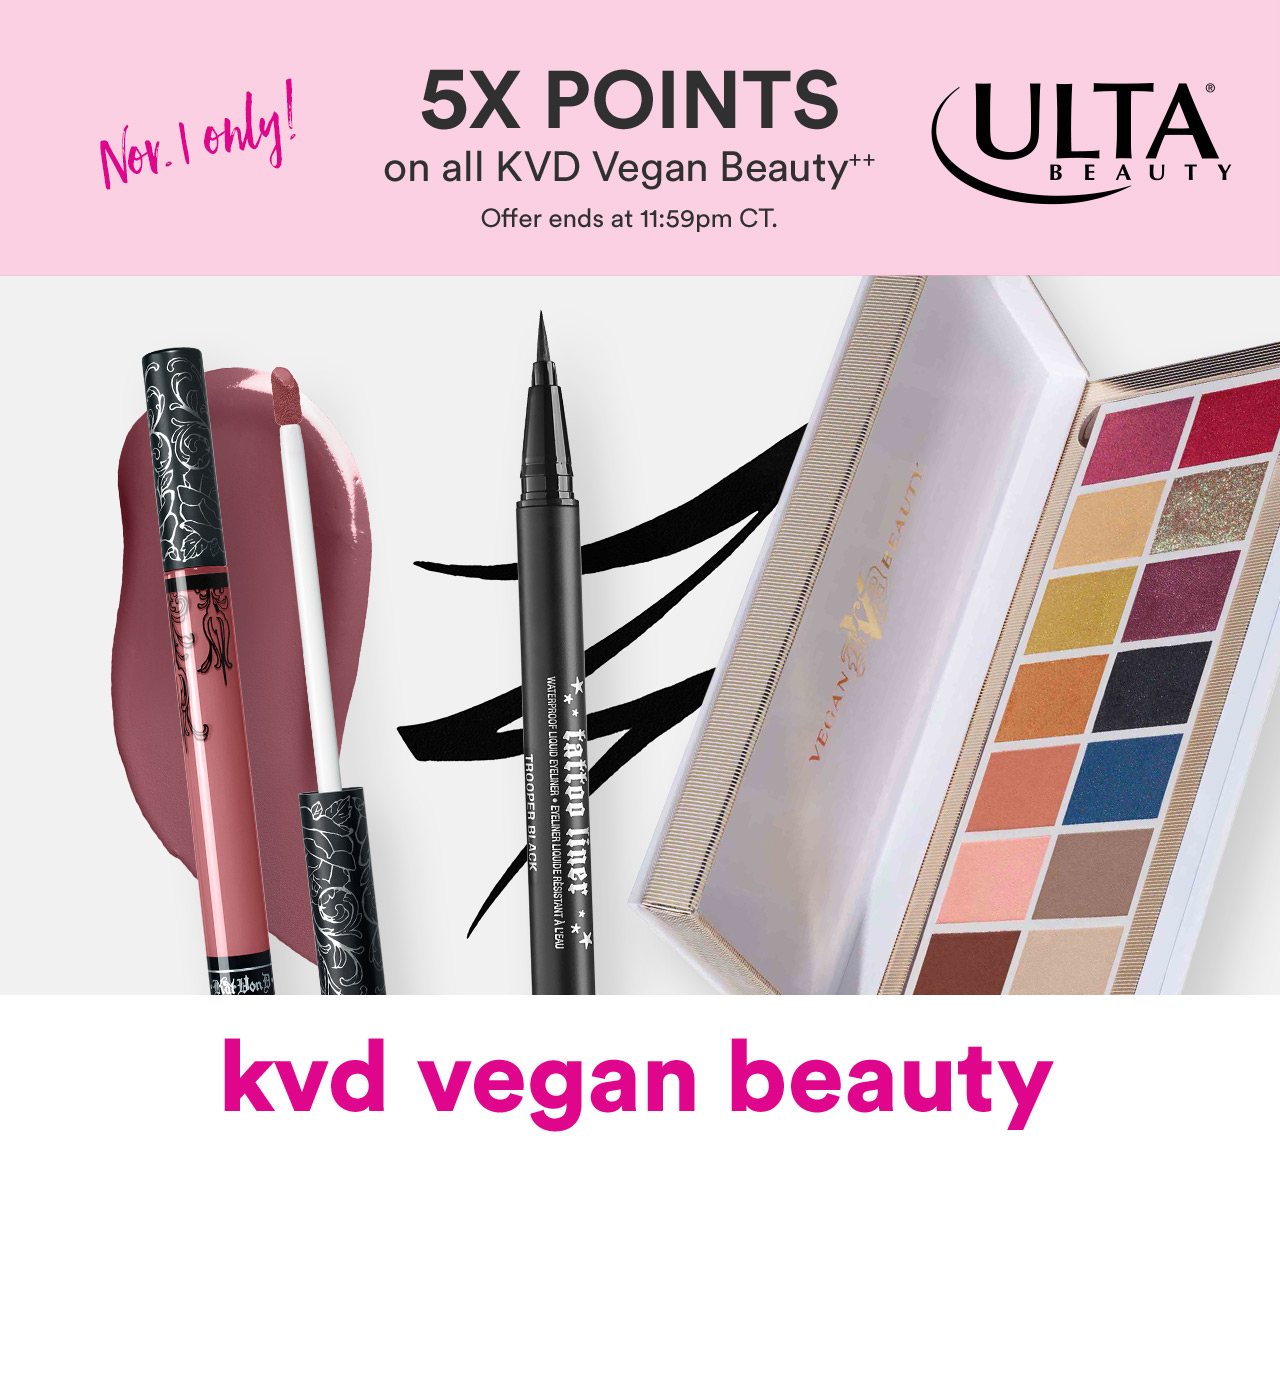 First Time! Ulta Beauty Ultamate Rewards Members can earn 5X points on World Vegan Day by purchasing ANY KVD Vegan Beauty product on Sunday, November 1st, 2020 in-store and at ulta.com, starting at 12 AM CST.